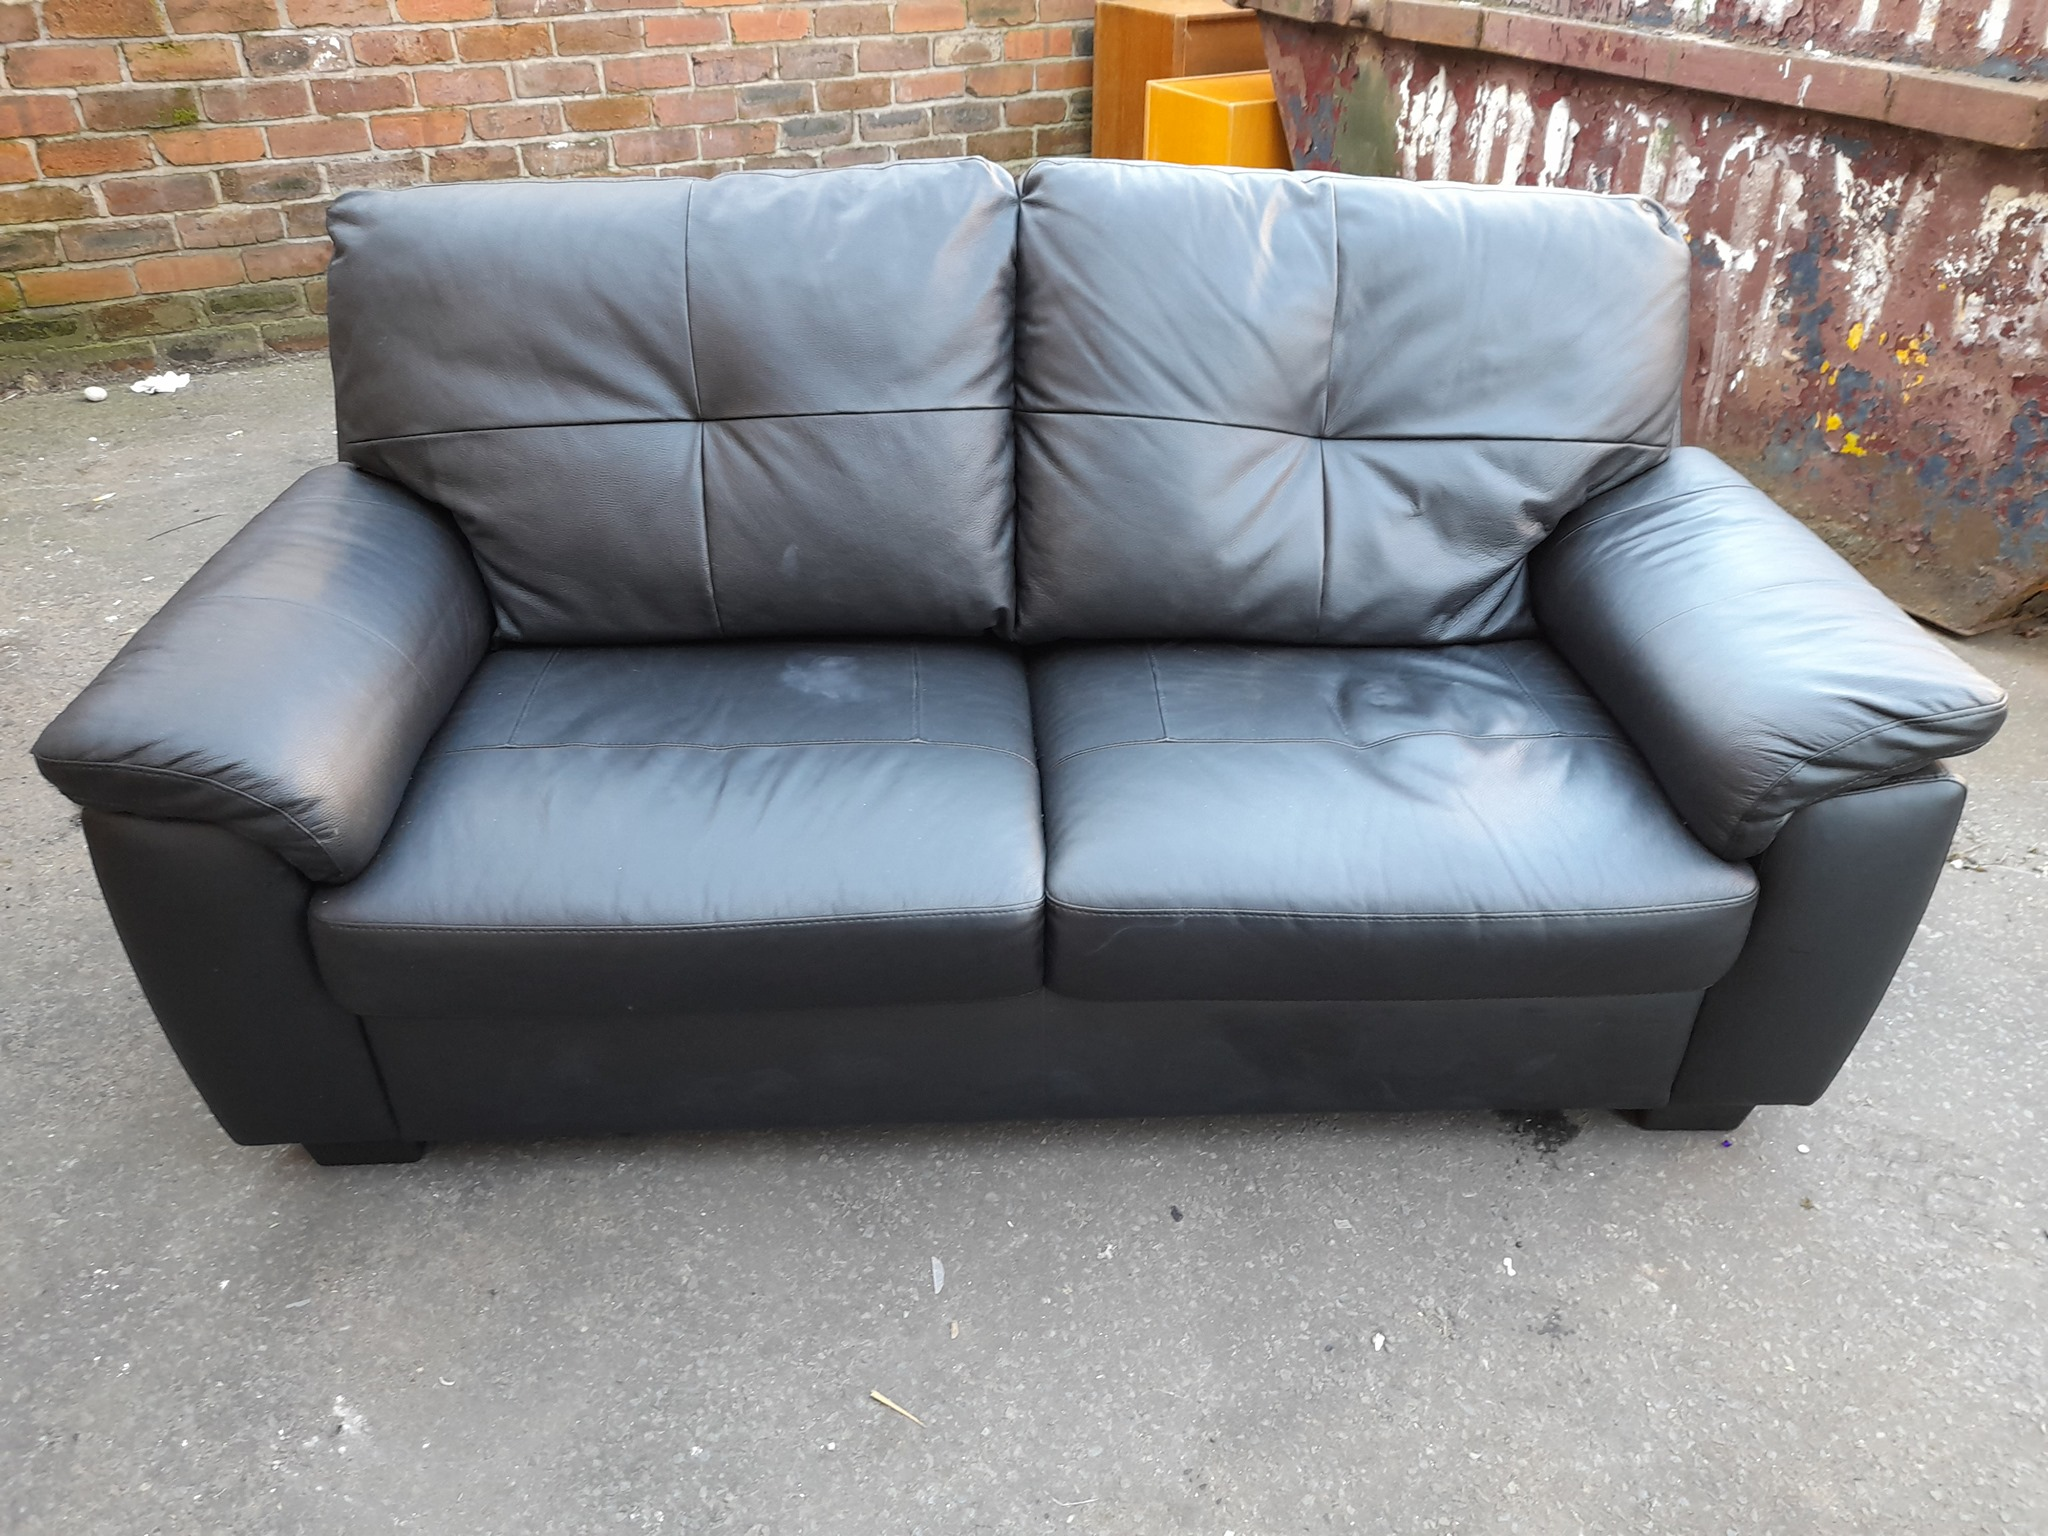 BLACK FAUX LEATHER TWO SEATER SOFA £95